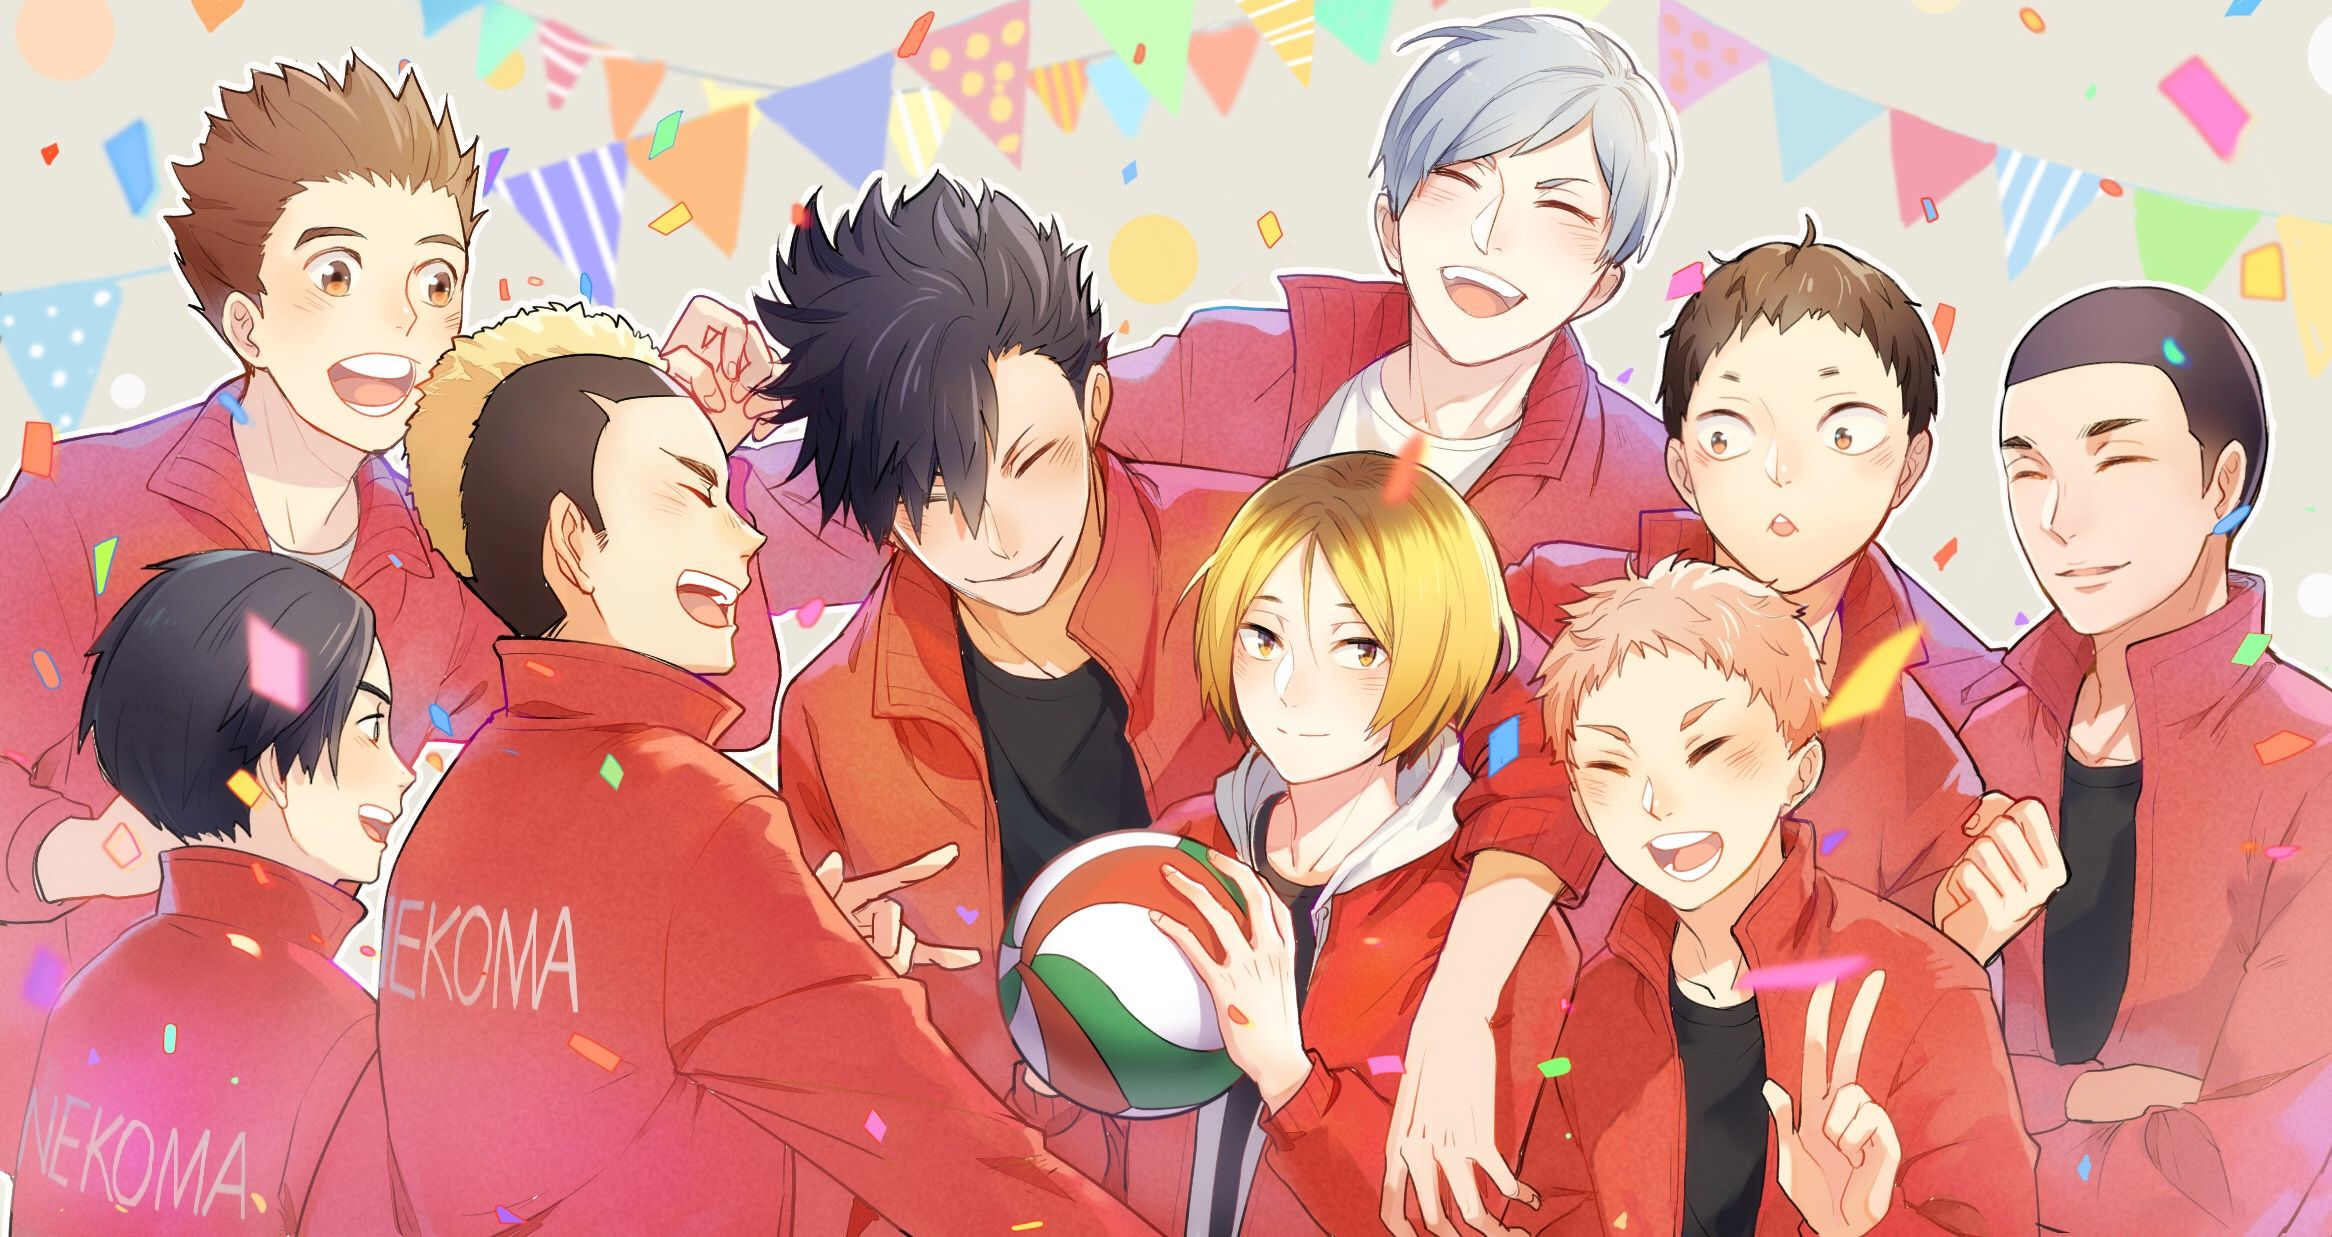 Nekoma High Wallpapers In 2020 Haikyuu Anime Anime Haikyuu Nekoma